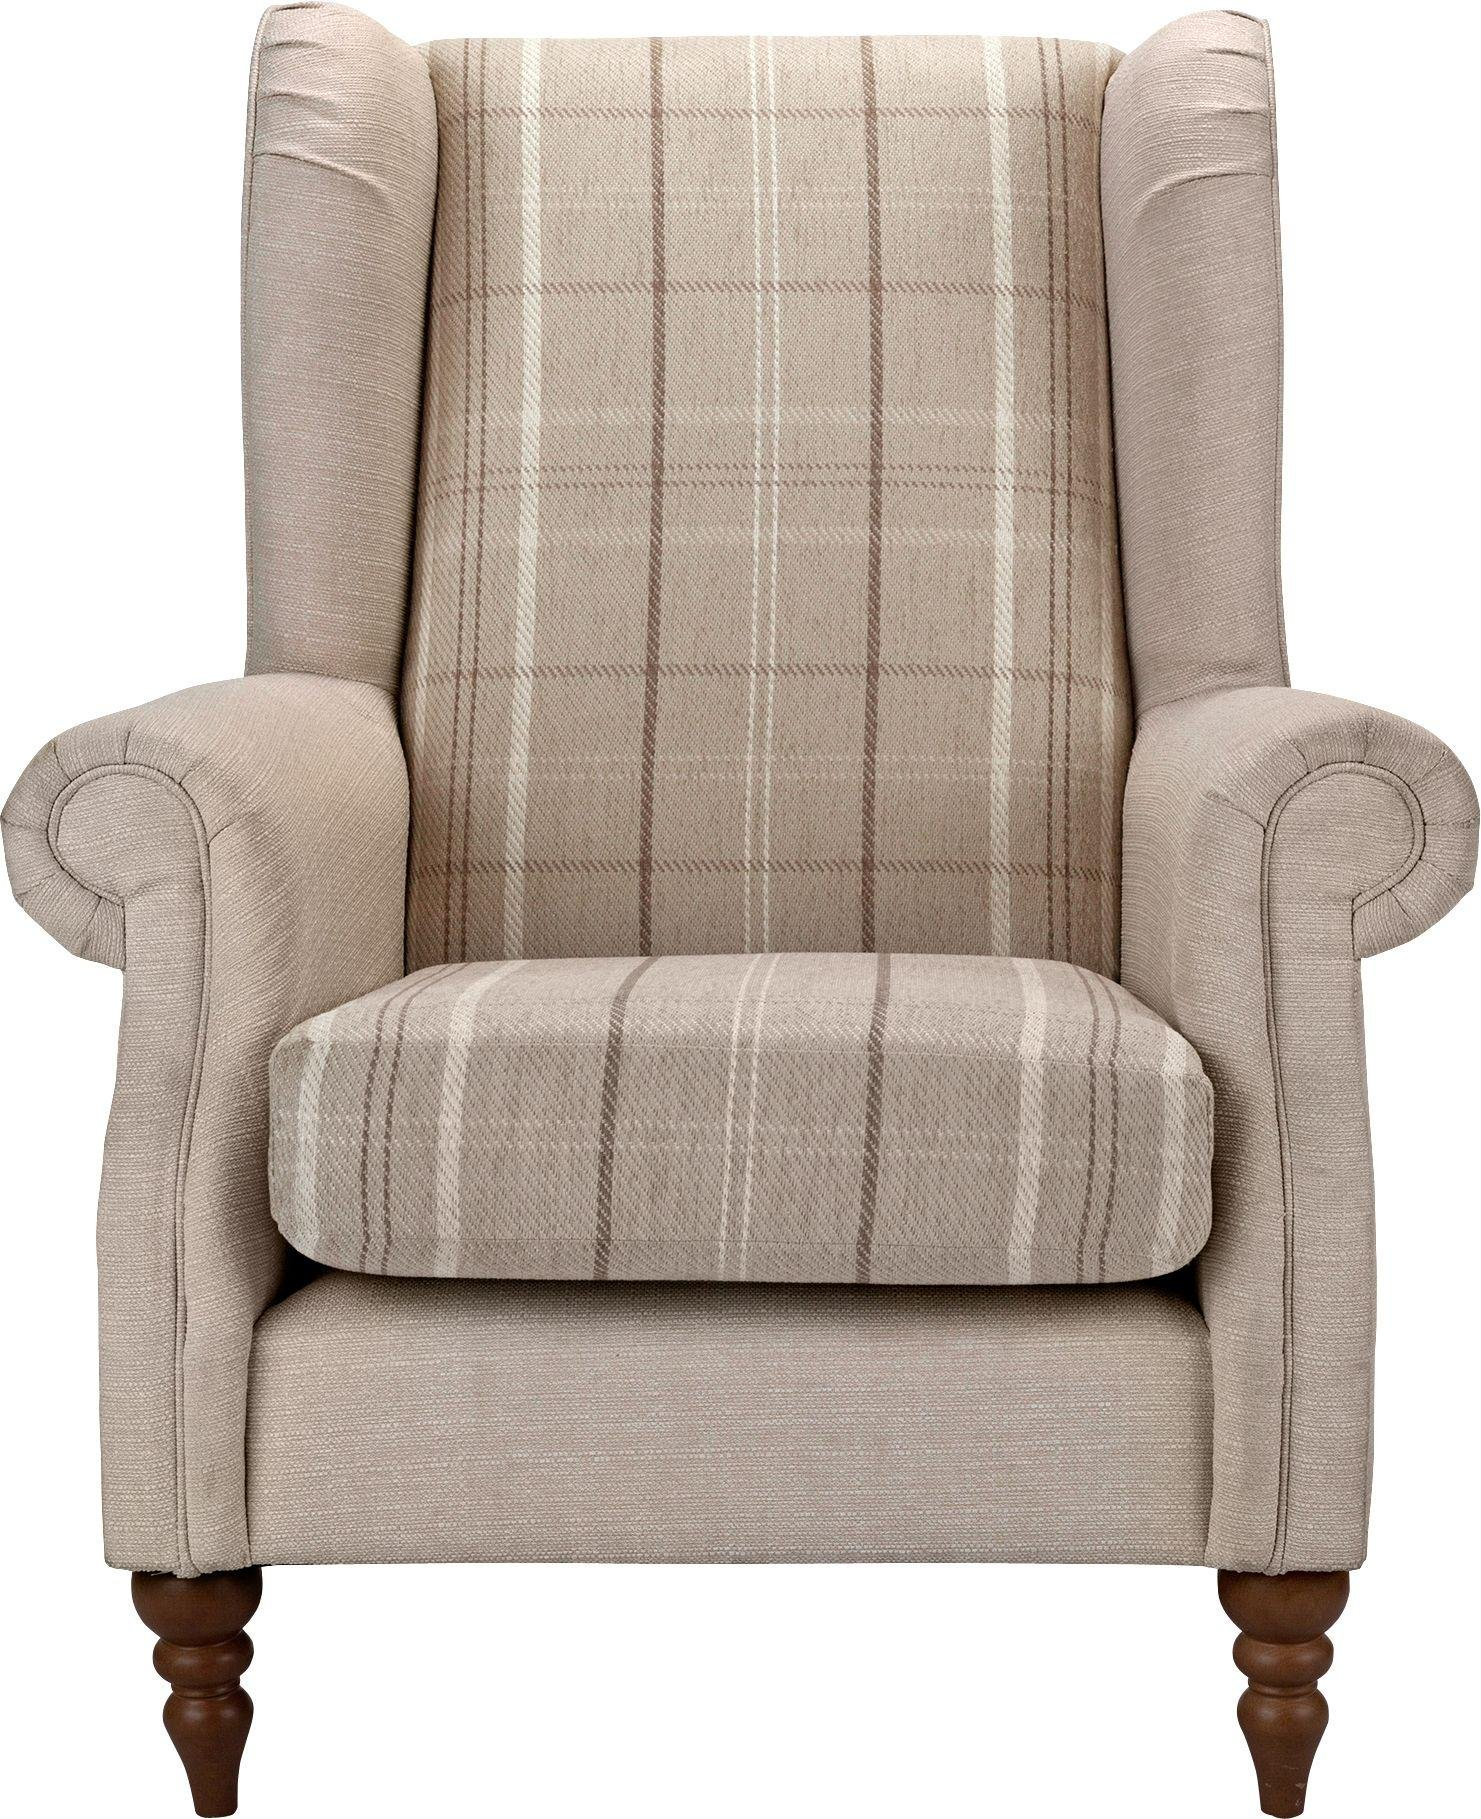 sale on argos home argyll fabric high back chair beige. Black Bedroom Furniture Sets. Home Design Ideas